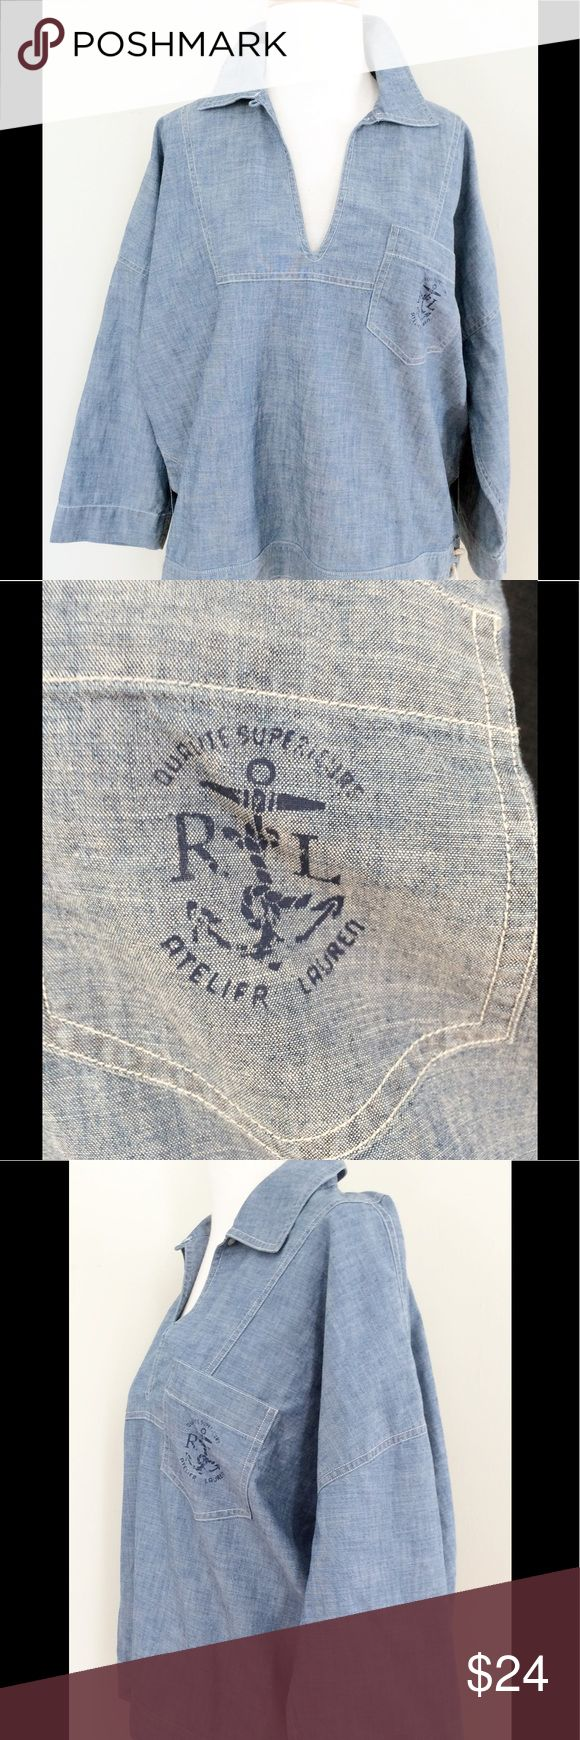 Ralph Lauren large women's nautical Jean shirt Ralph Lauren large women's nautical Jean shirt rope tie sides 100% Cotton measurements: 26 Pit to Pit, Length 22.5 inches Lauren Ralph Lauren Tops